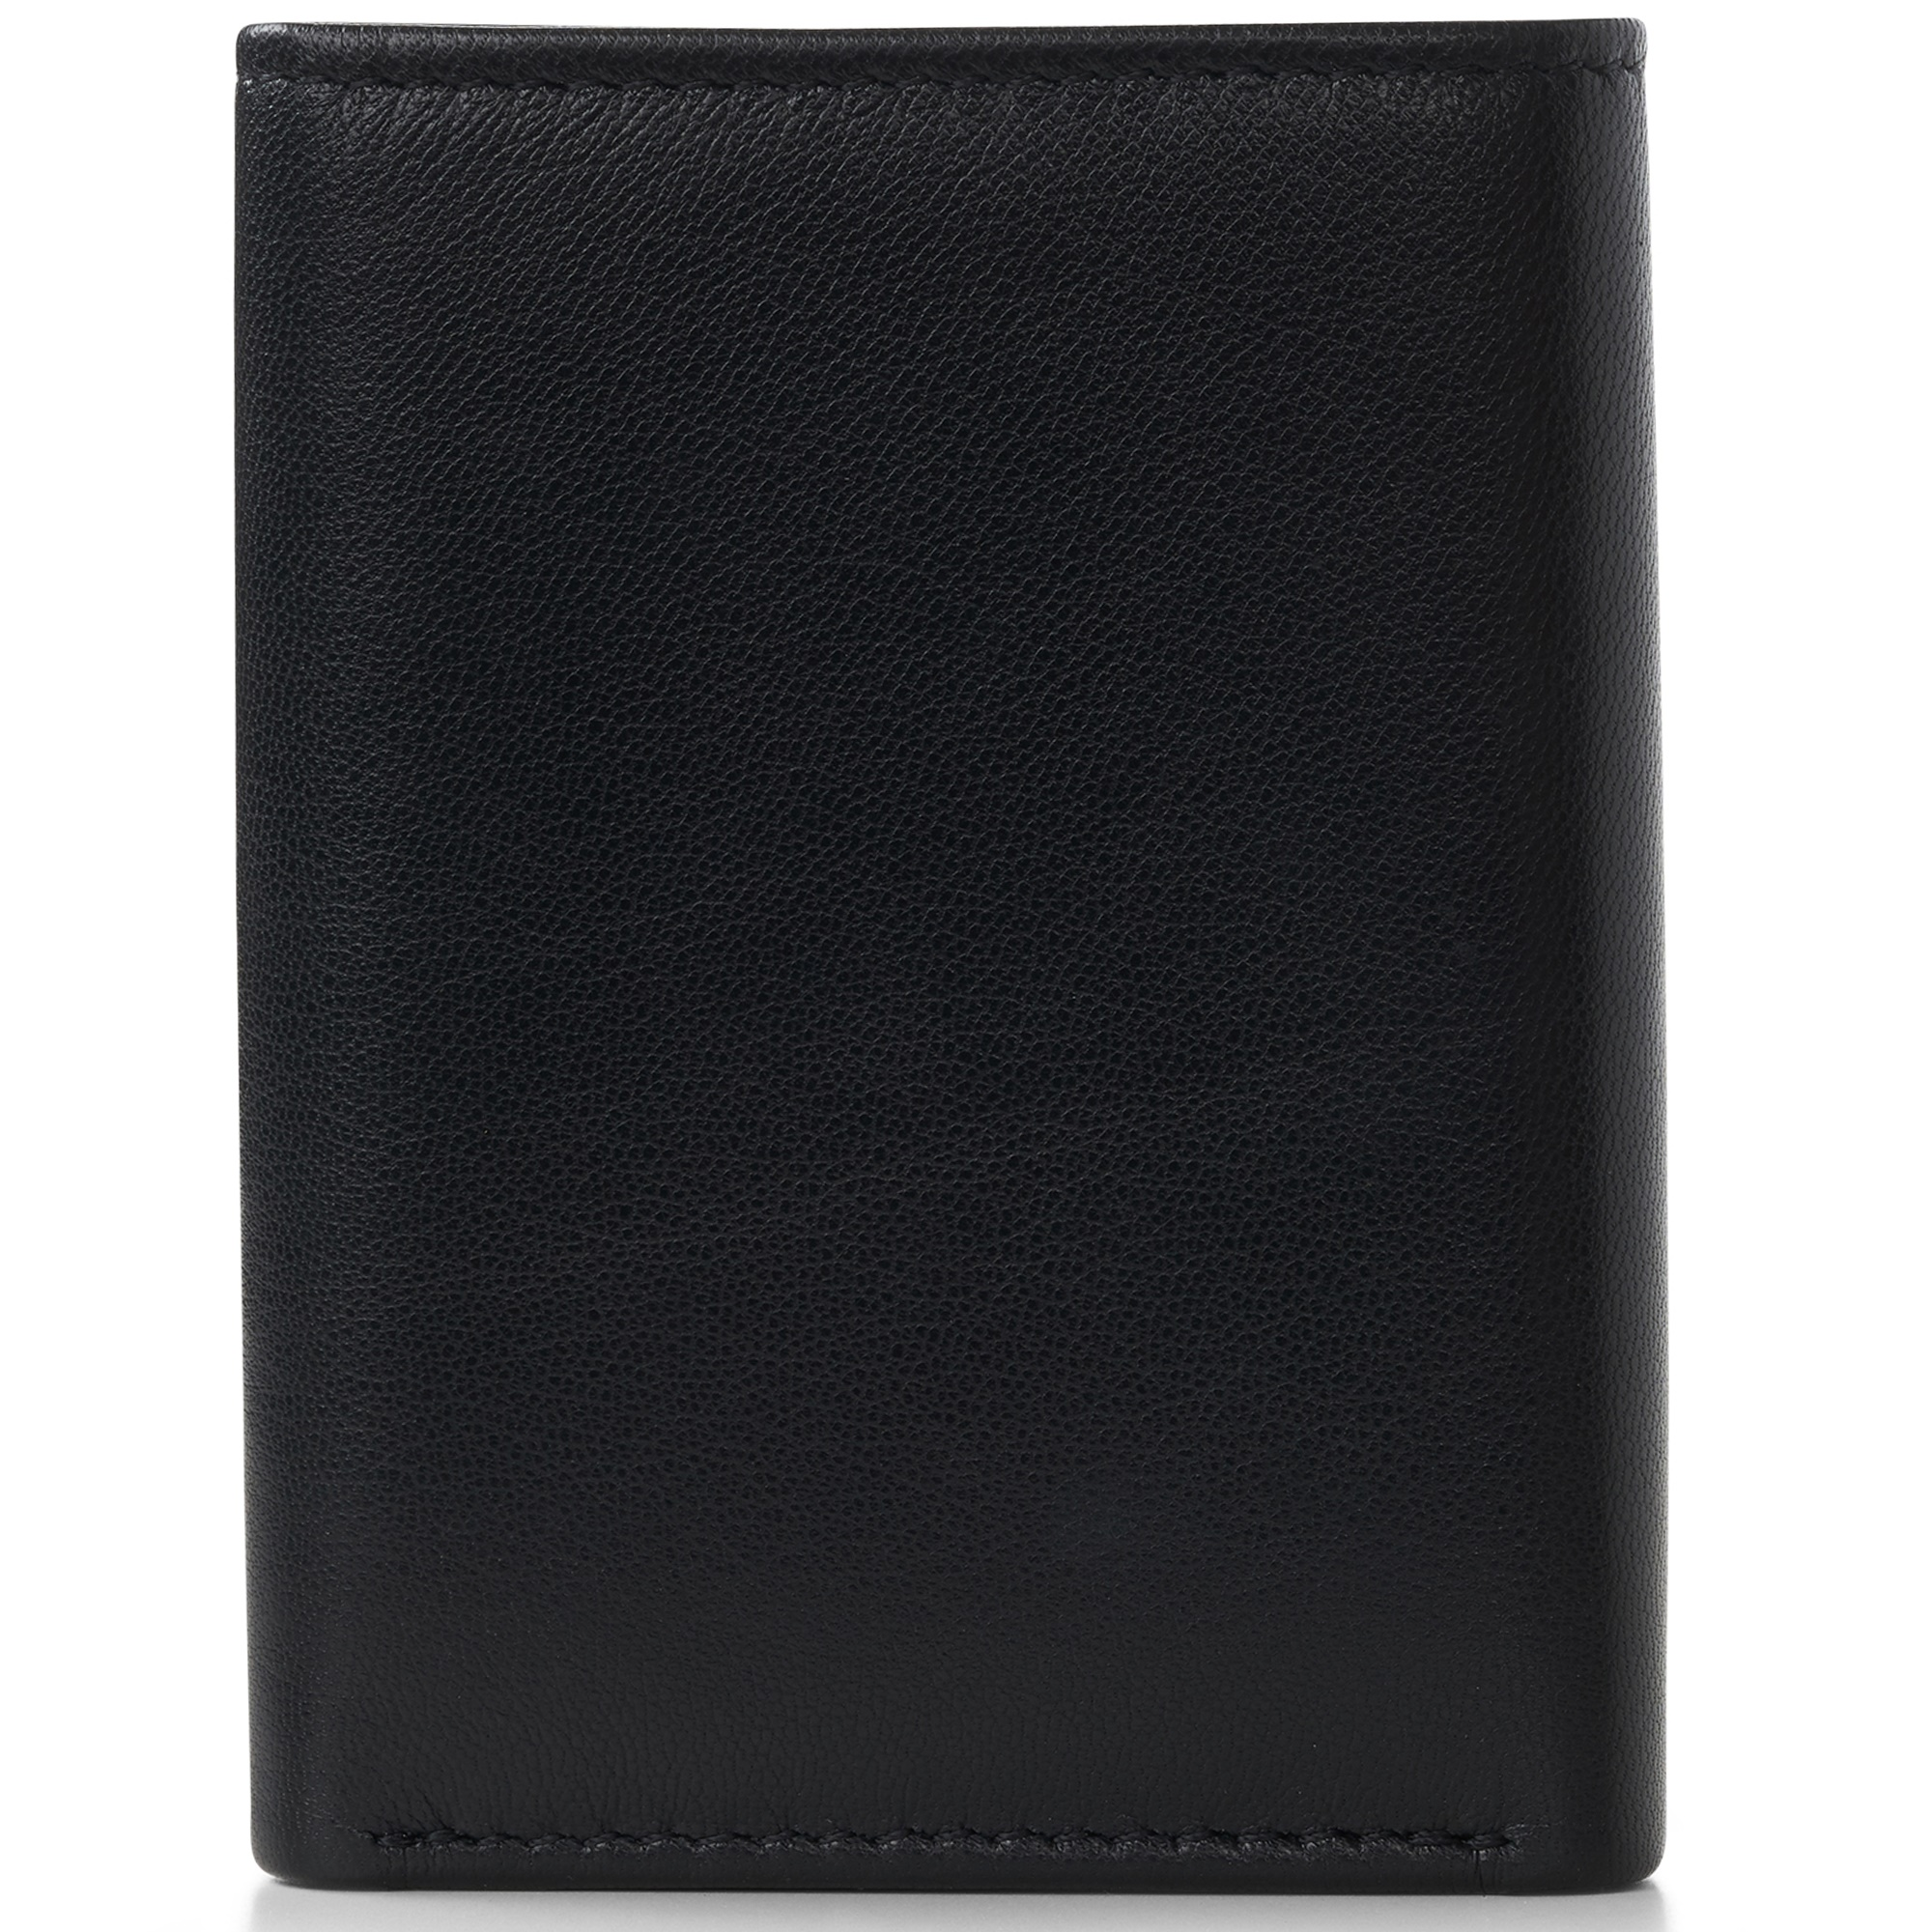 Alpine-Swiss-RFID-Mens-Wallet-Deluxe-Capacity-Trifold-With-Divided-Bill-Section thumbnail 19